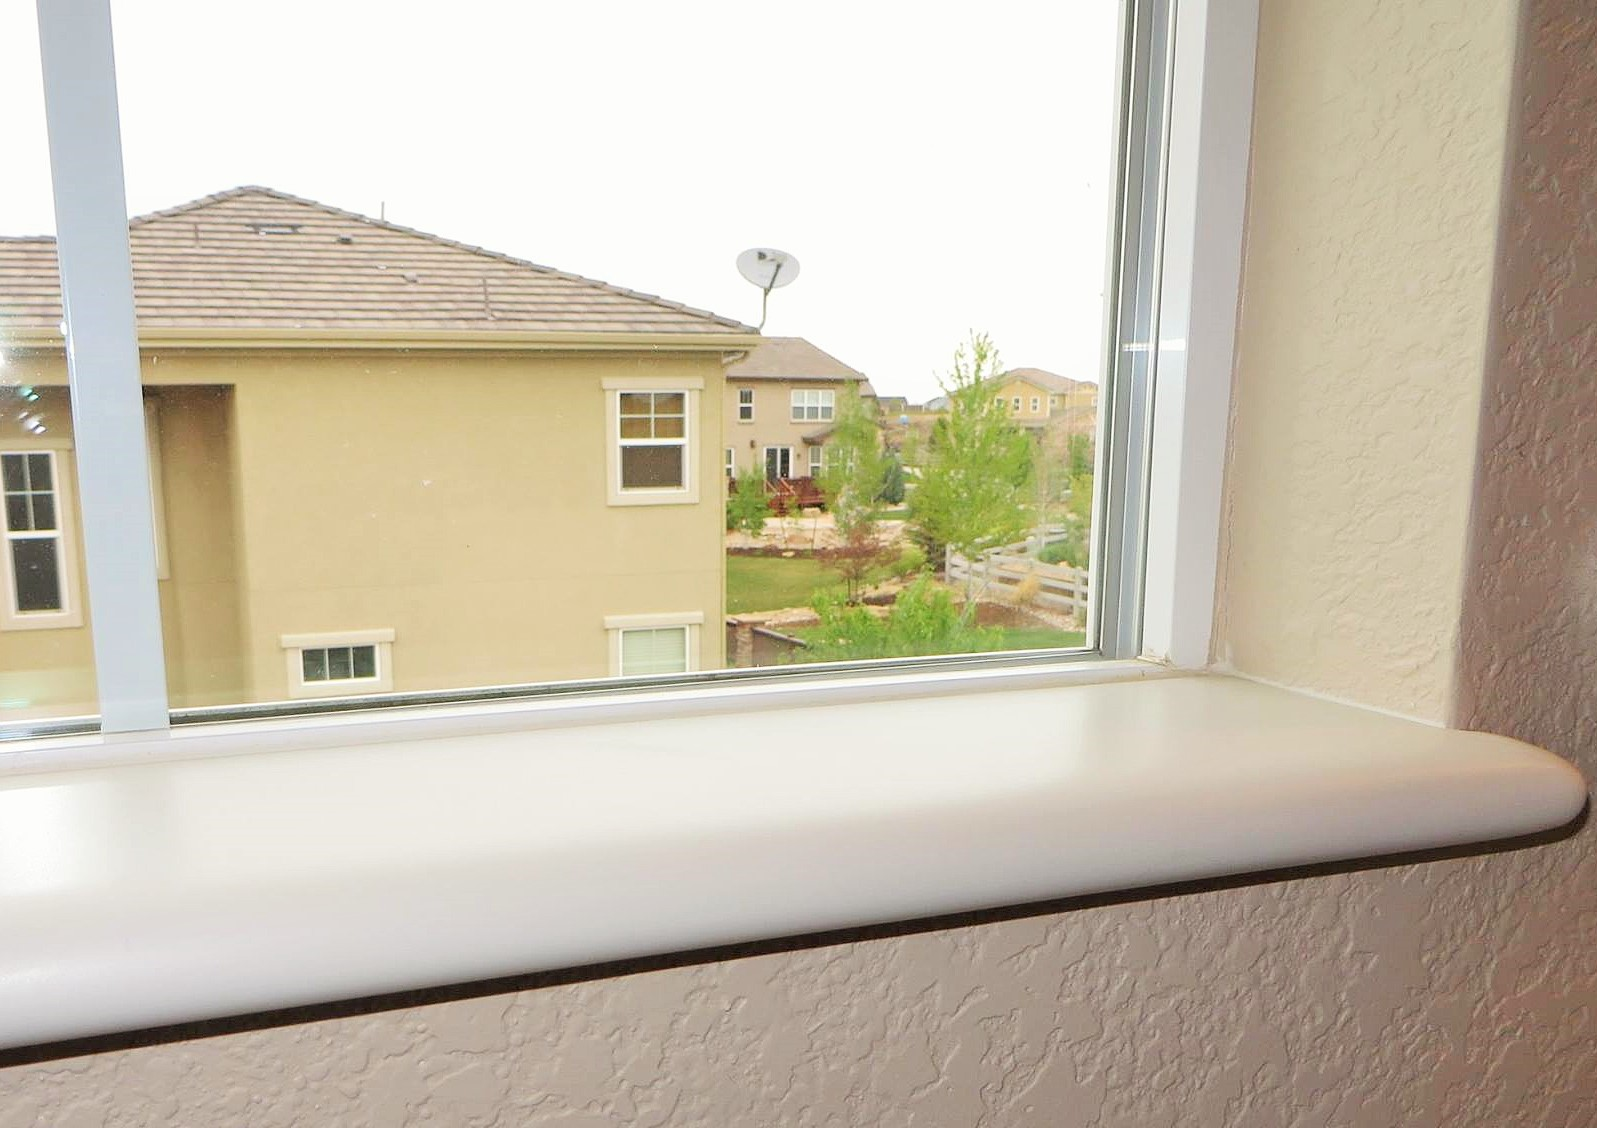 CORIAN Bisque sill with bullnose edge